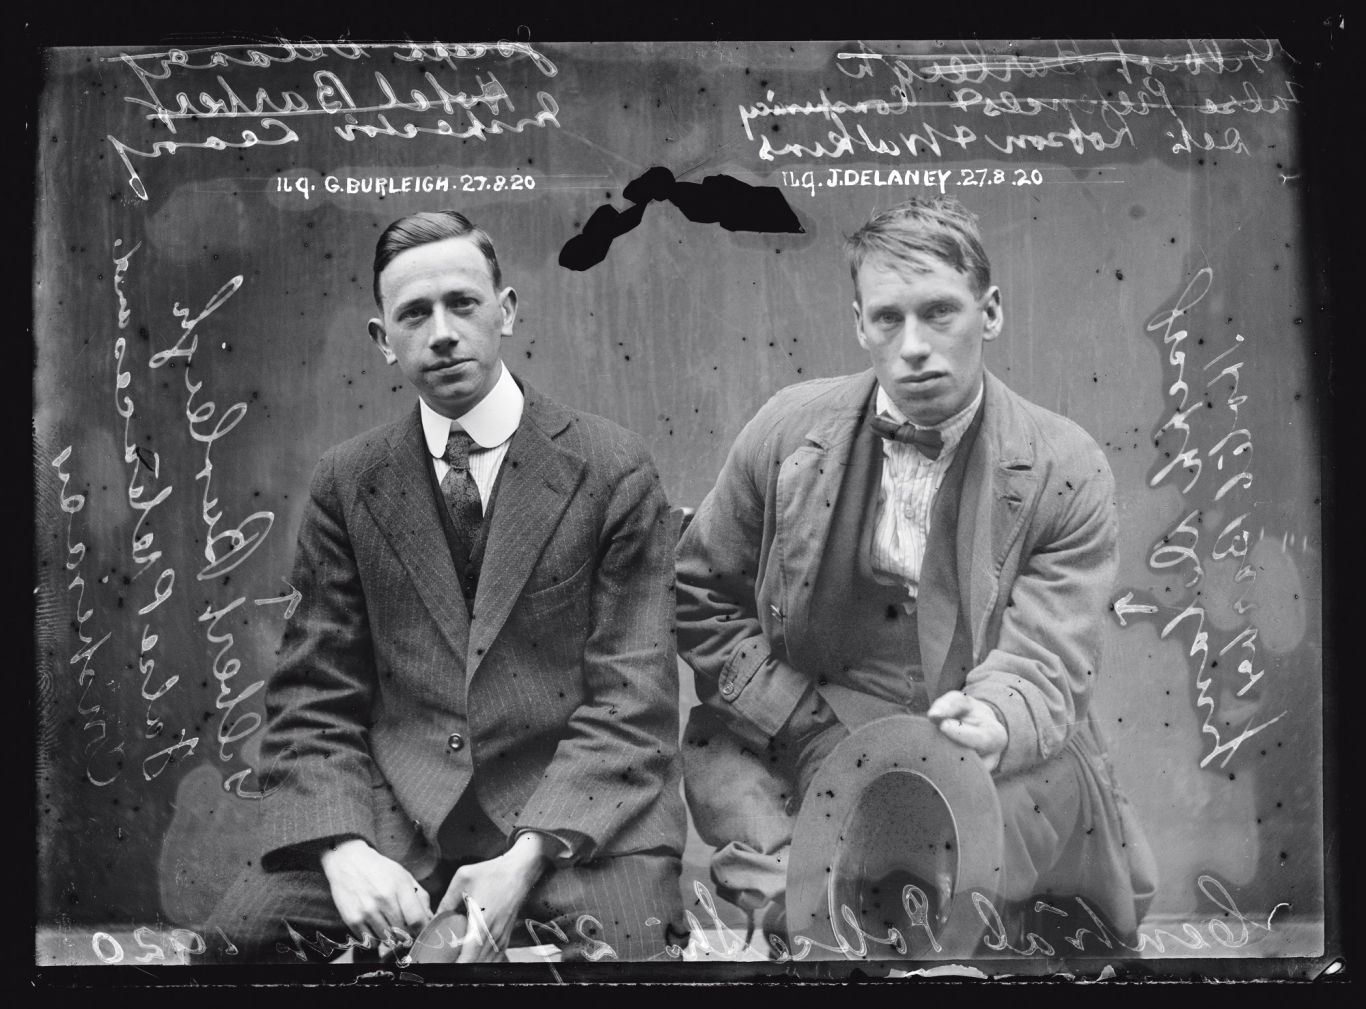 Black and white mugshot of two seated men with inscription marked onto photograph above each man.